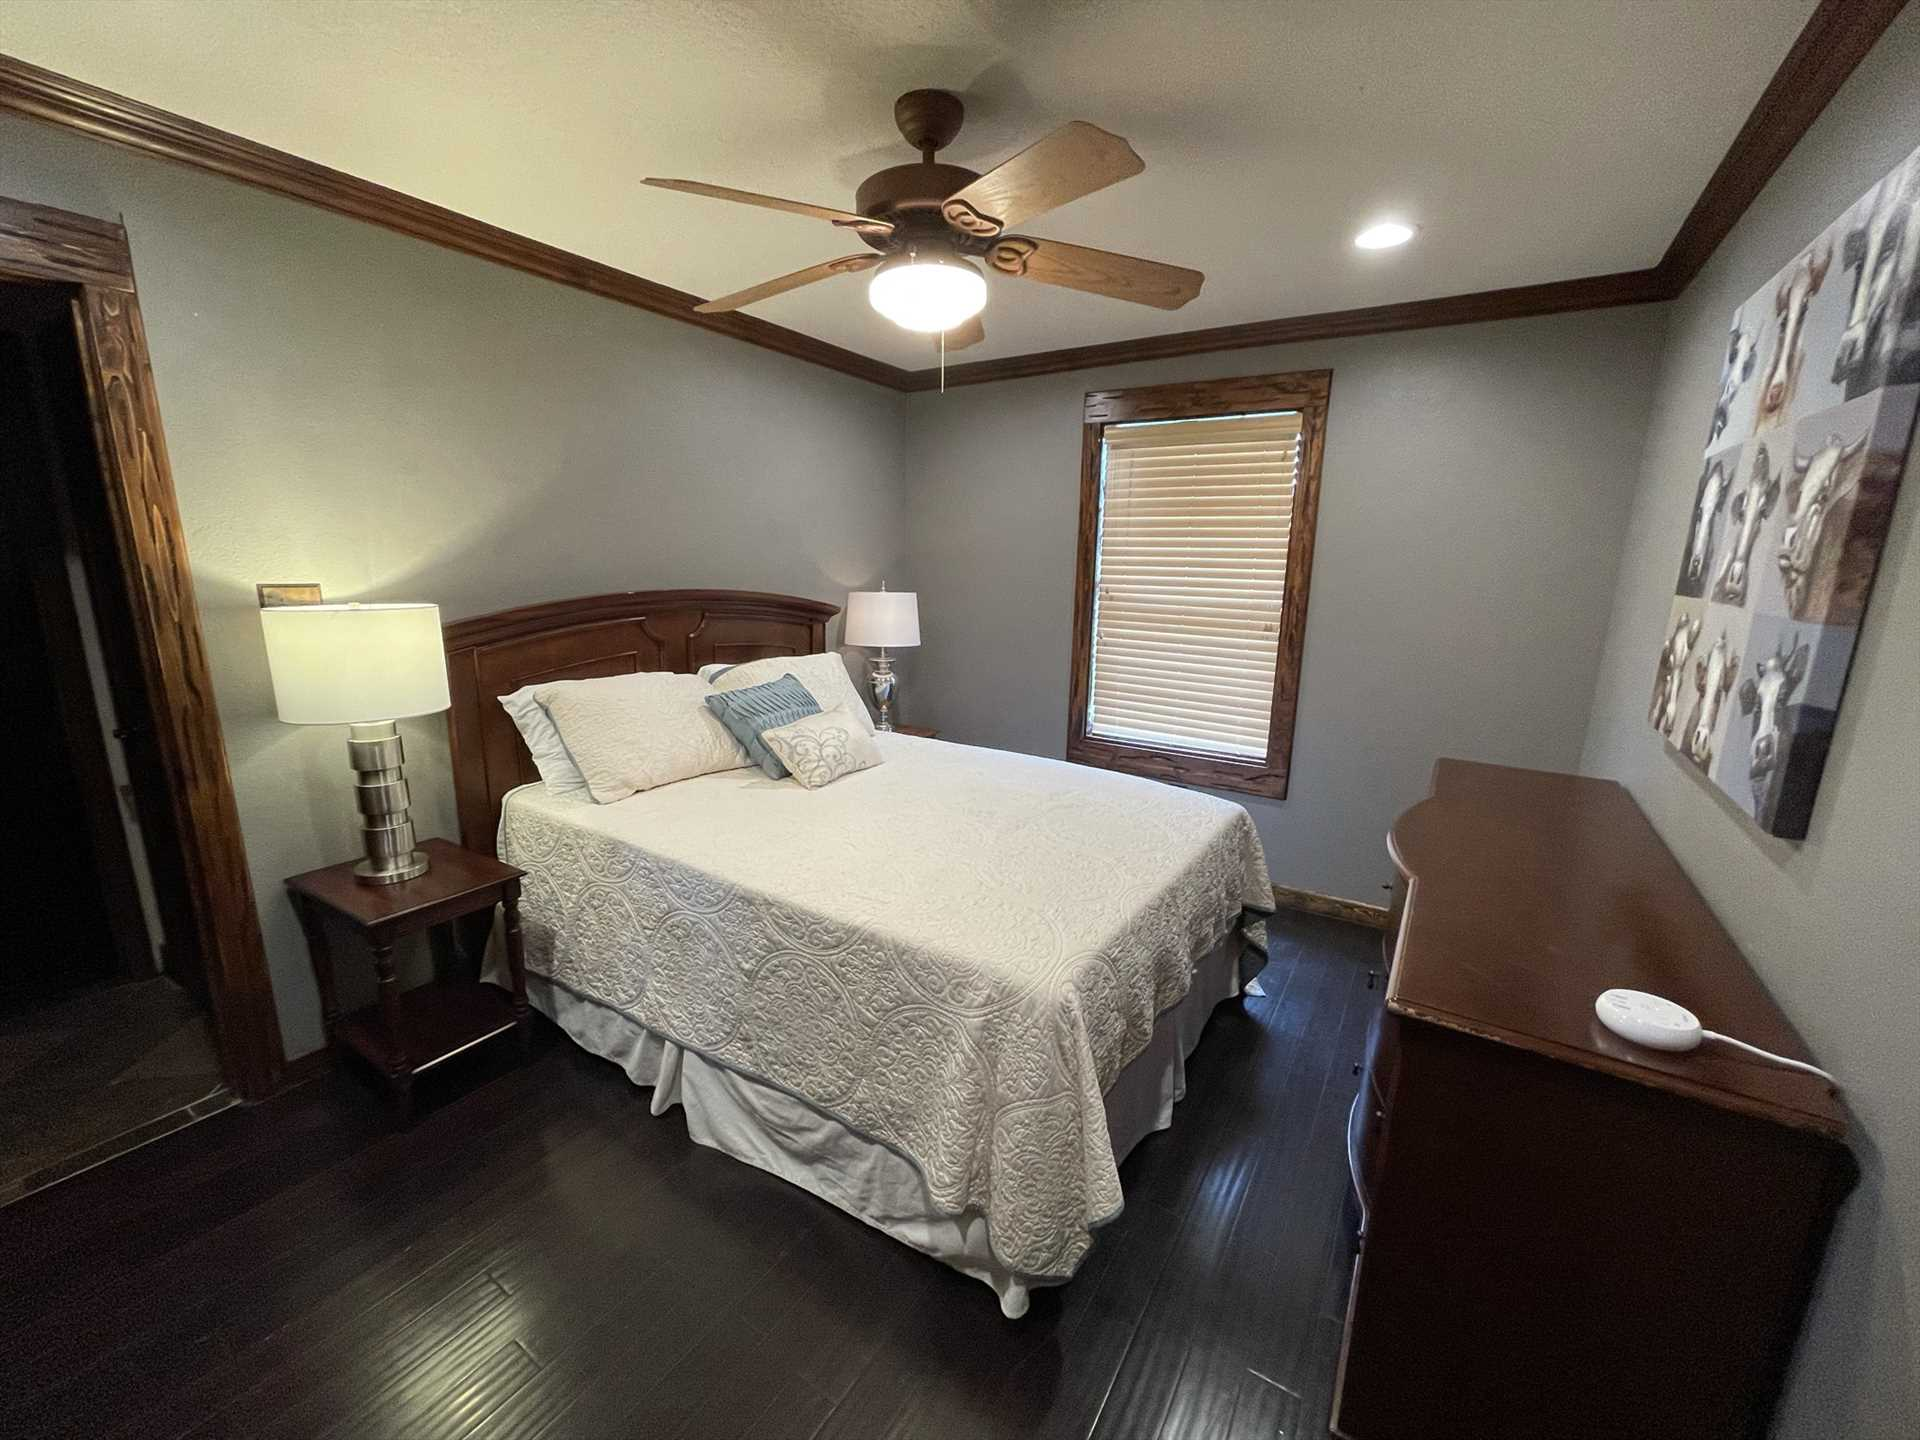 With two king-sized and two queen-sized beds, the retreat provides sweet and restful shuteye for up to eight guests.